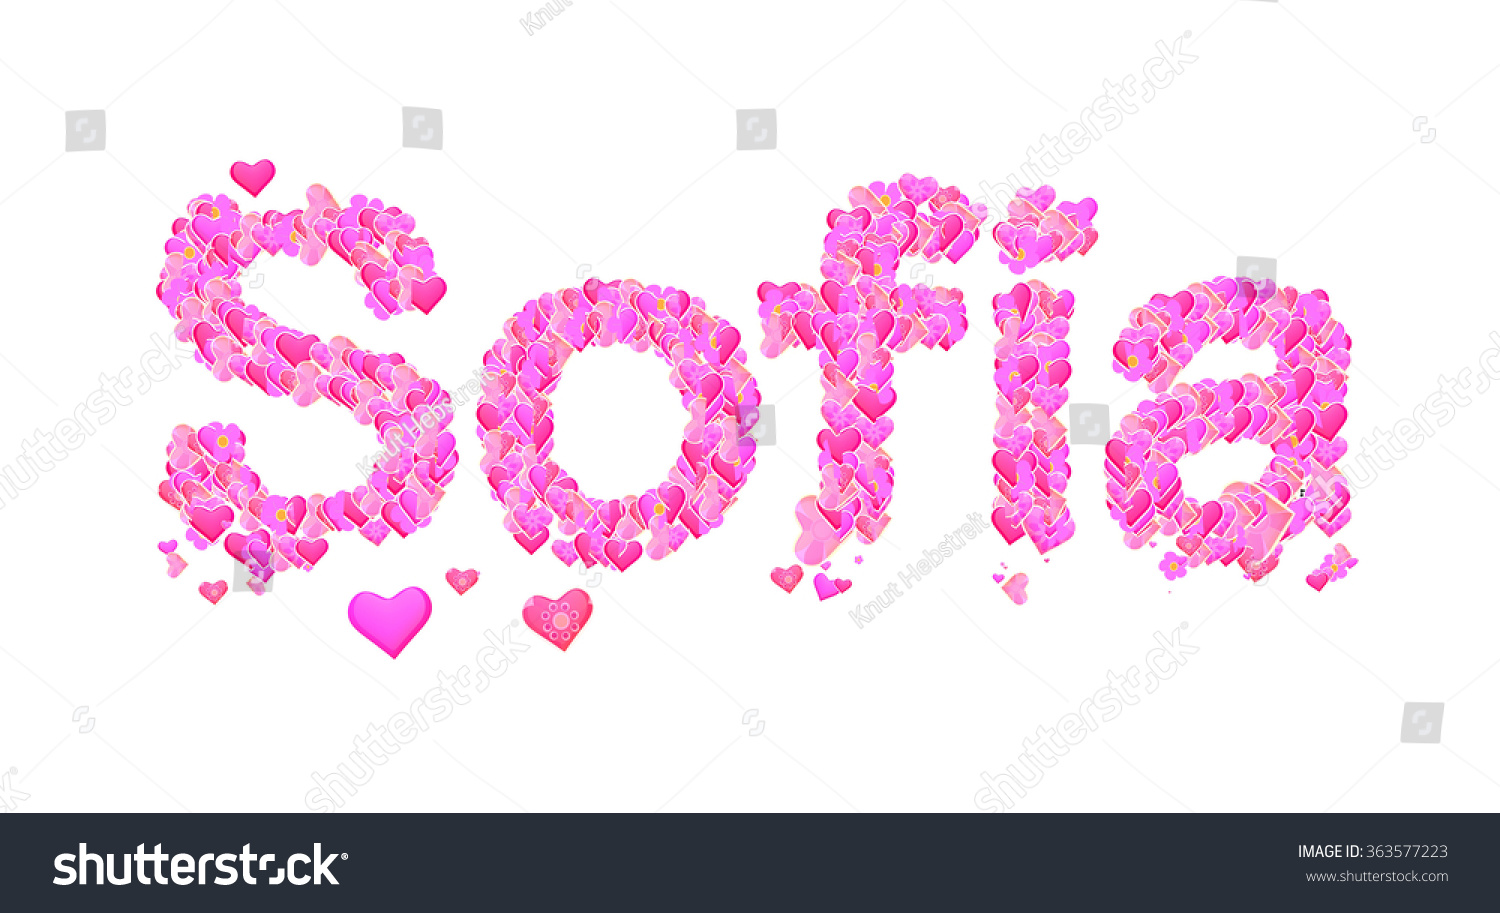 Image Gallery sofia name : stock photo sofia name set with hearts decorative lettering type design 363577223 from keywordsuggest.org size 1500 x 913 jpeg 409kB